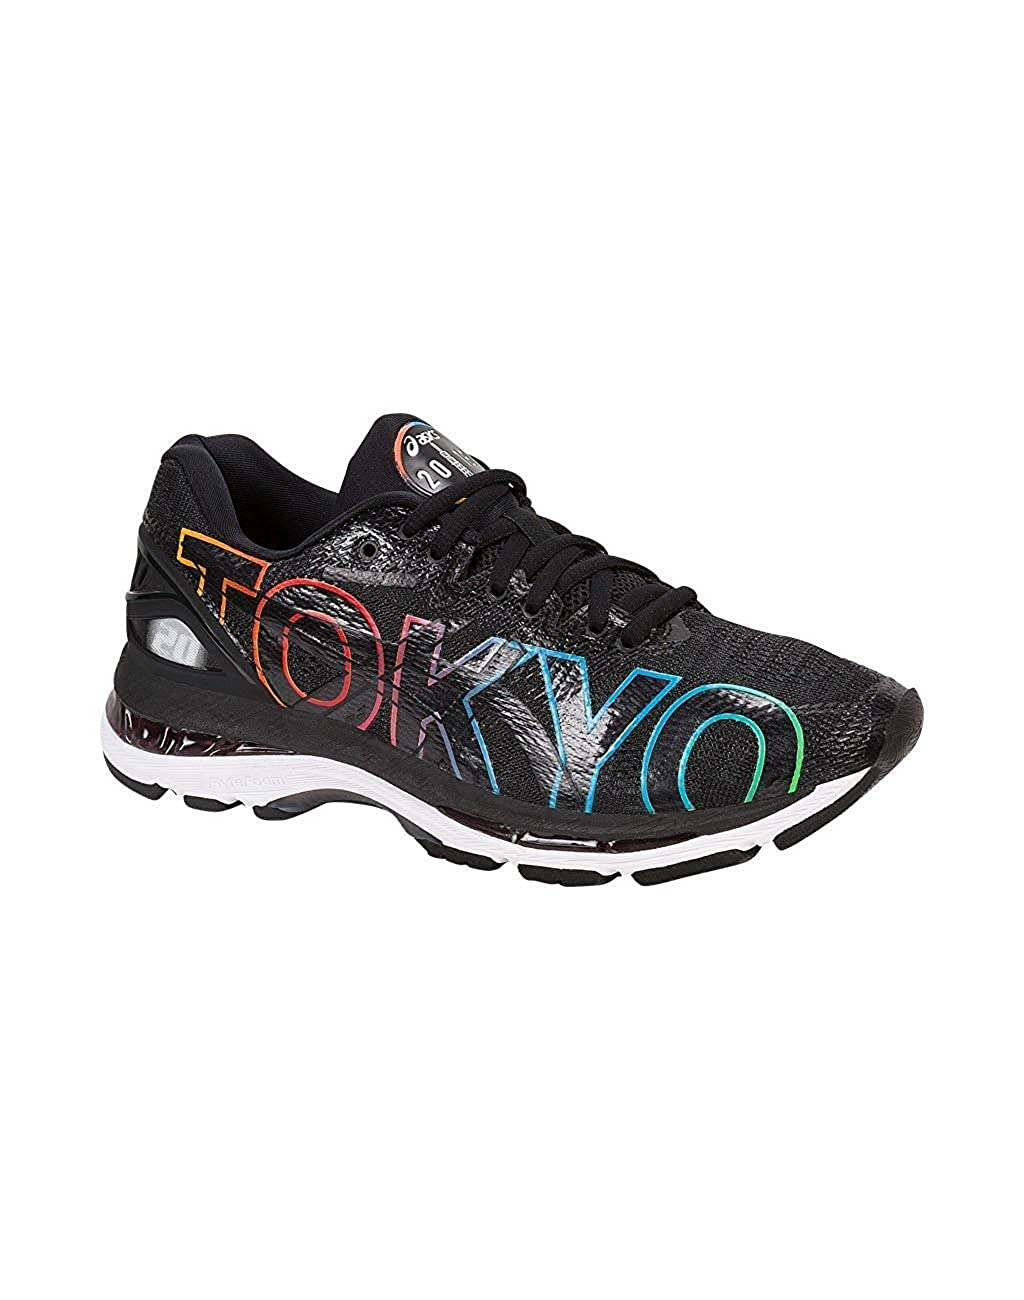 nouveaux styles 4baff 27212 Asics Womens Gel-Nimbus 20 Tokyo Shoes: Amazon.co.uk: Shoes ...